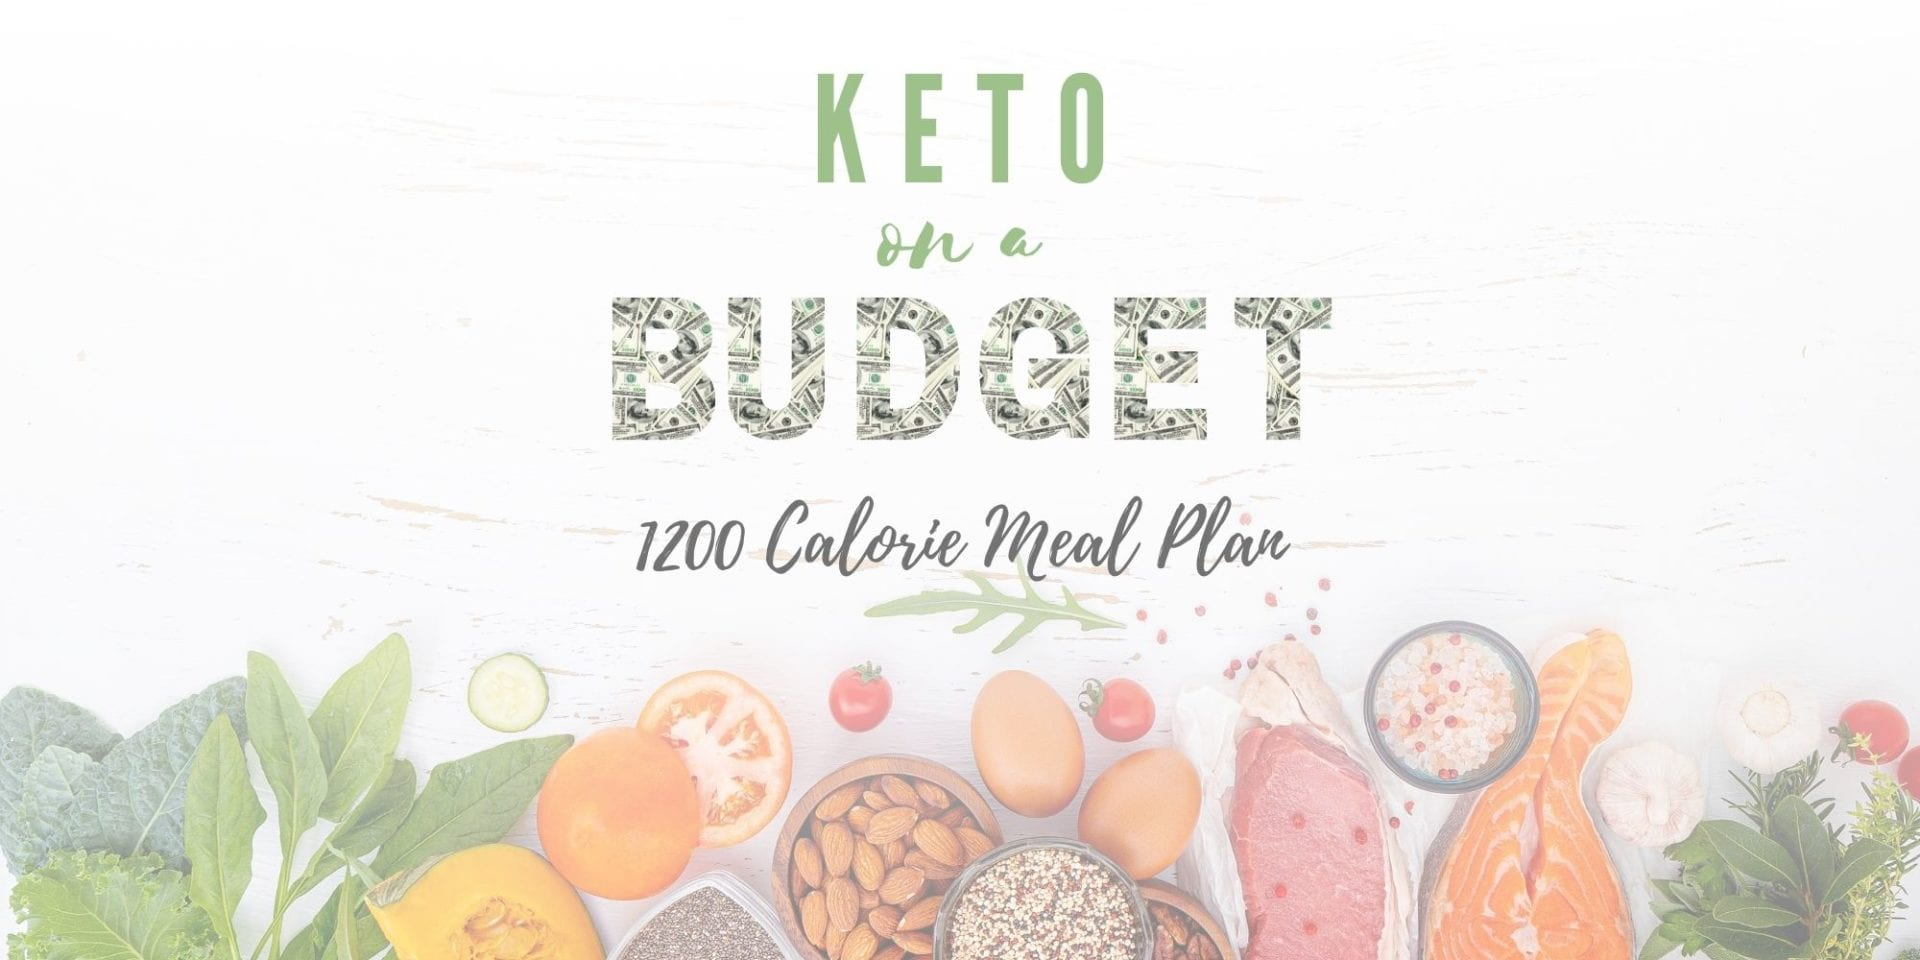 Keto On A Budget 1,200 Calorie Meal Plan